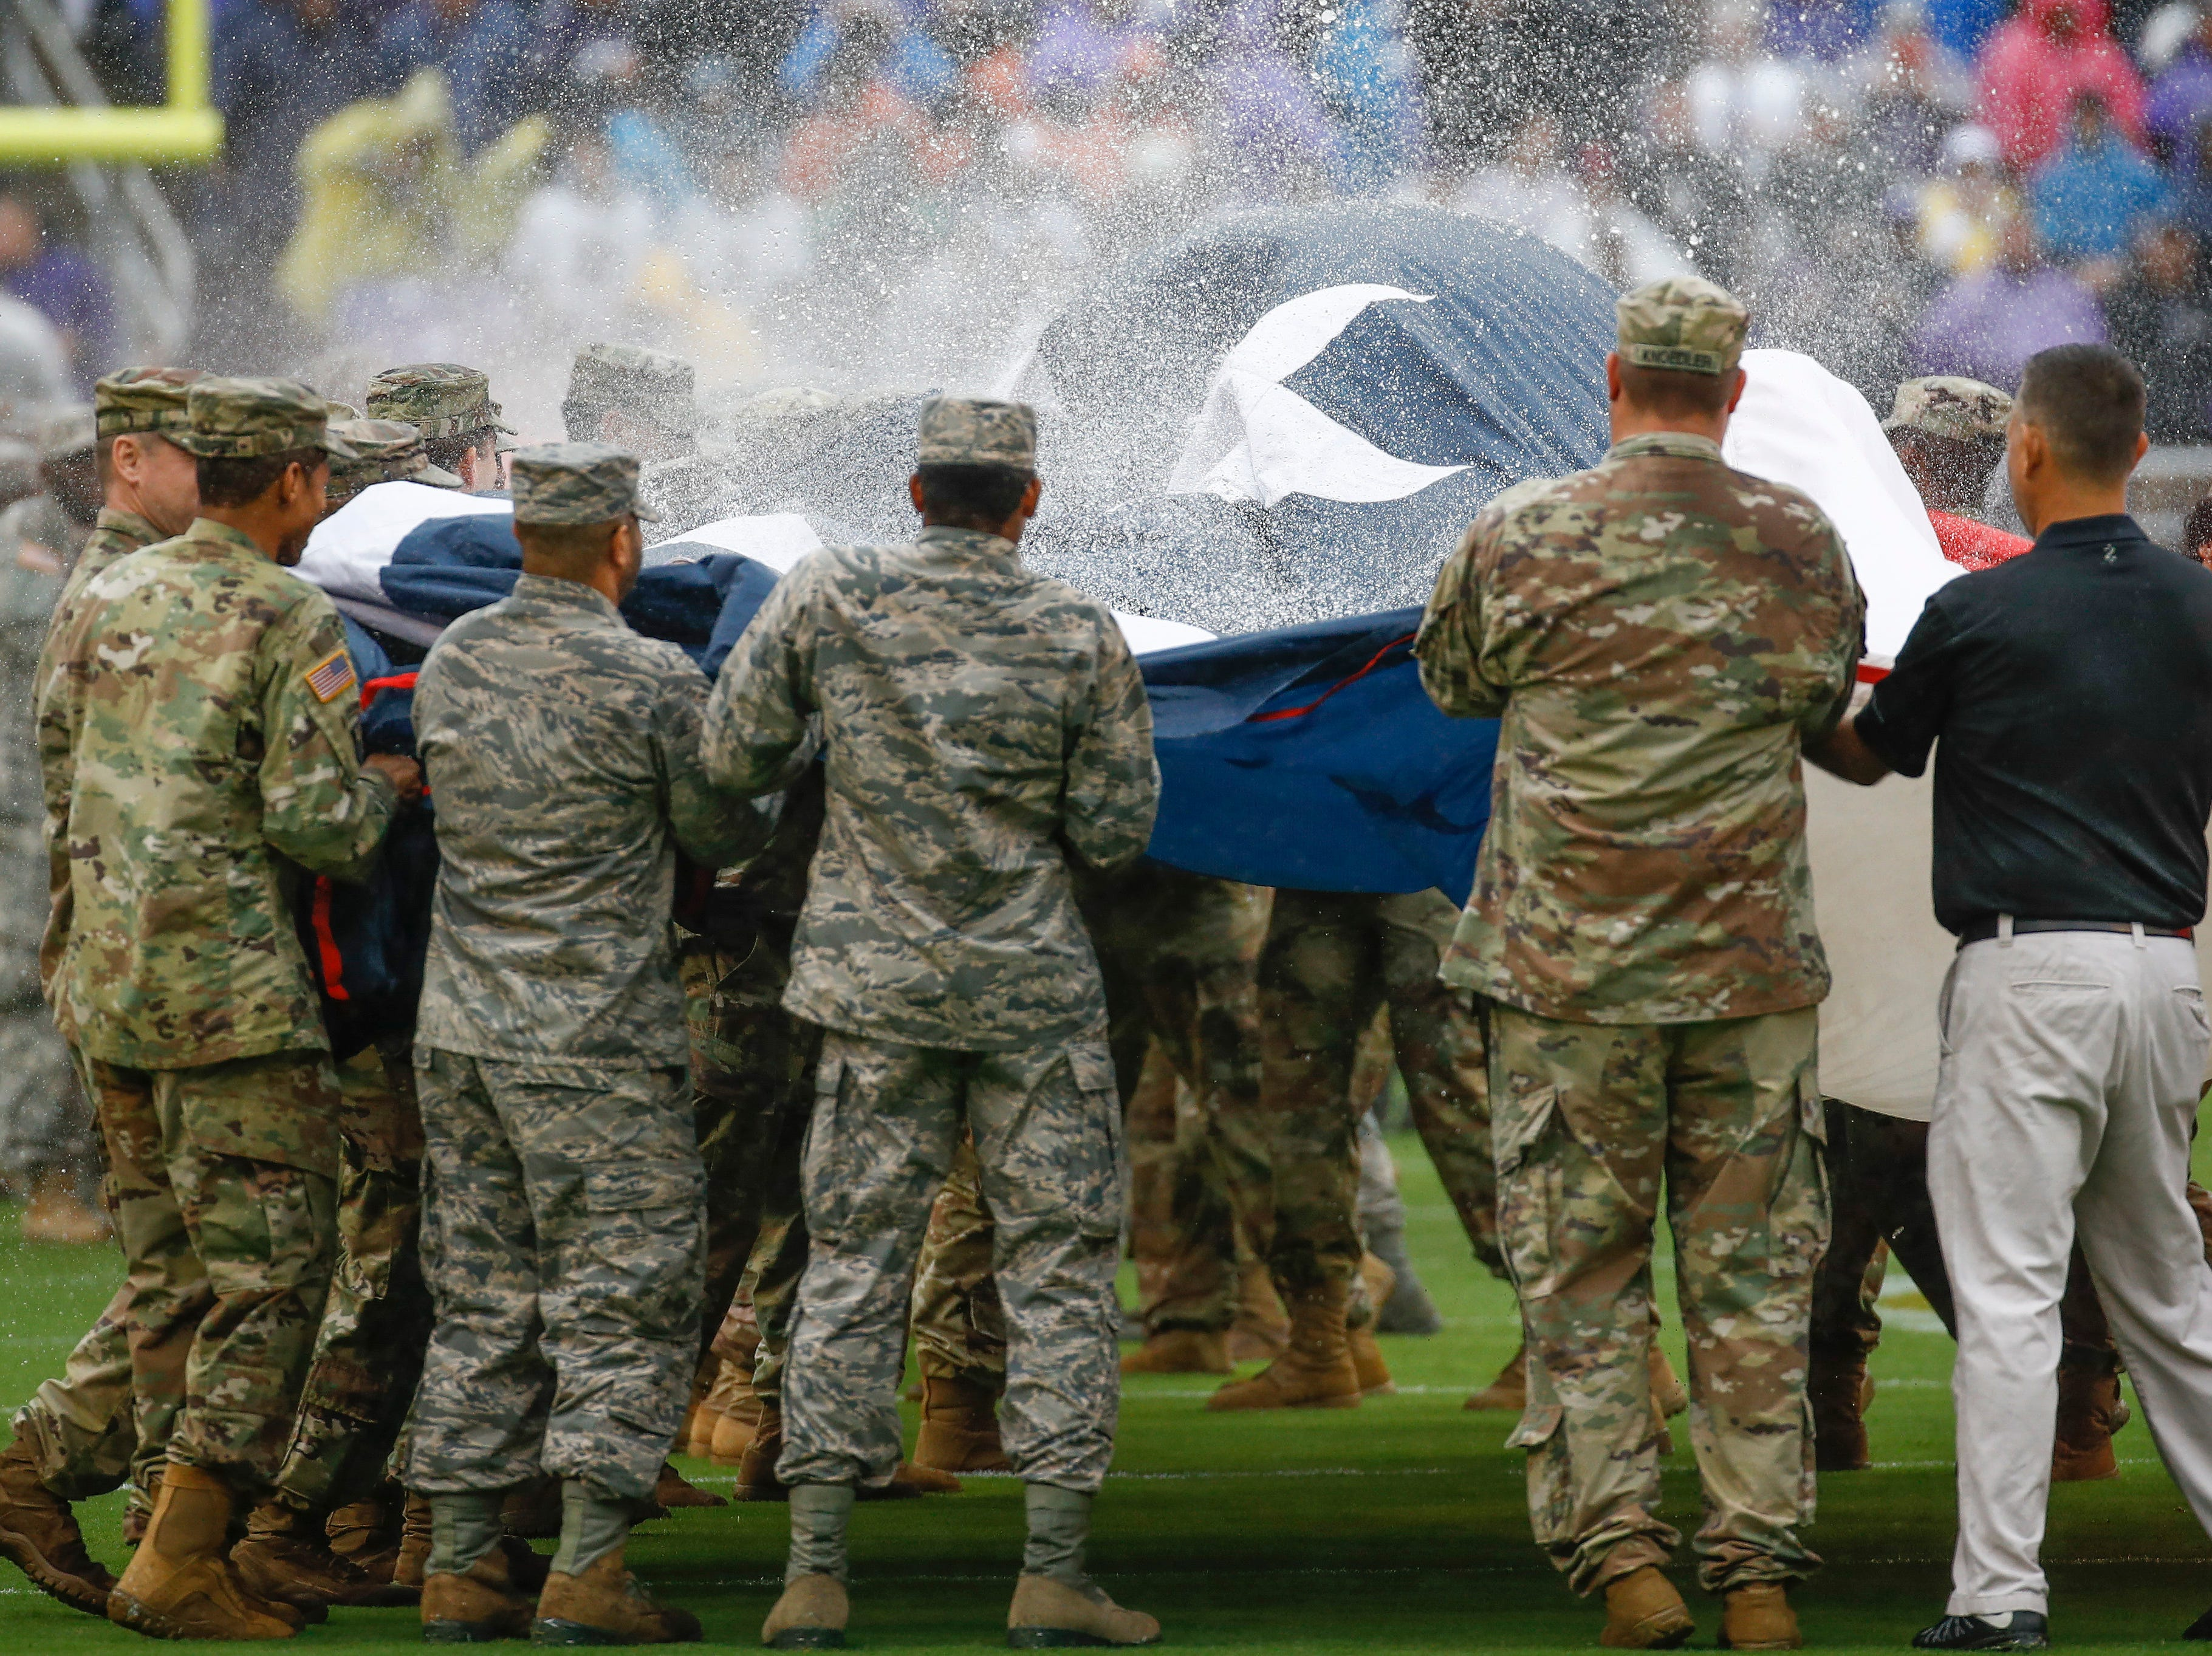 Military personnel shake water off of a United States flag after the playing of the national anthem before an NFL football game between the Baltimore Ravens and the Buffalo Bills, Sunday, Sept. 9, 2018 in Baltimore. (AP Photo/Patrick Semansky)